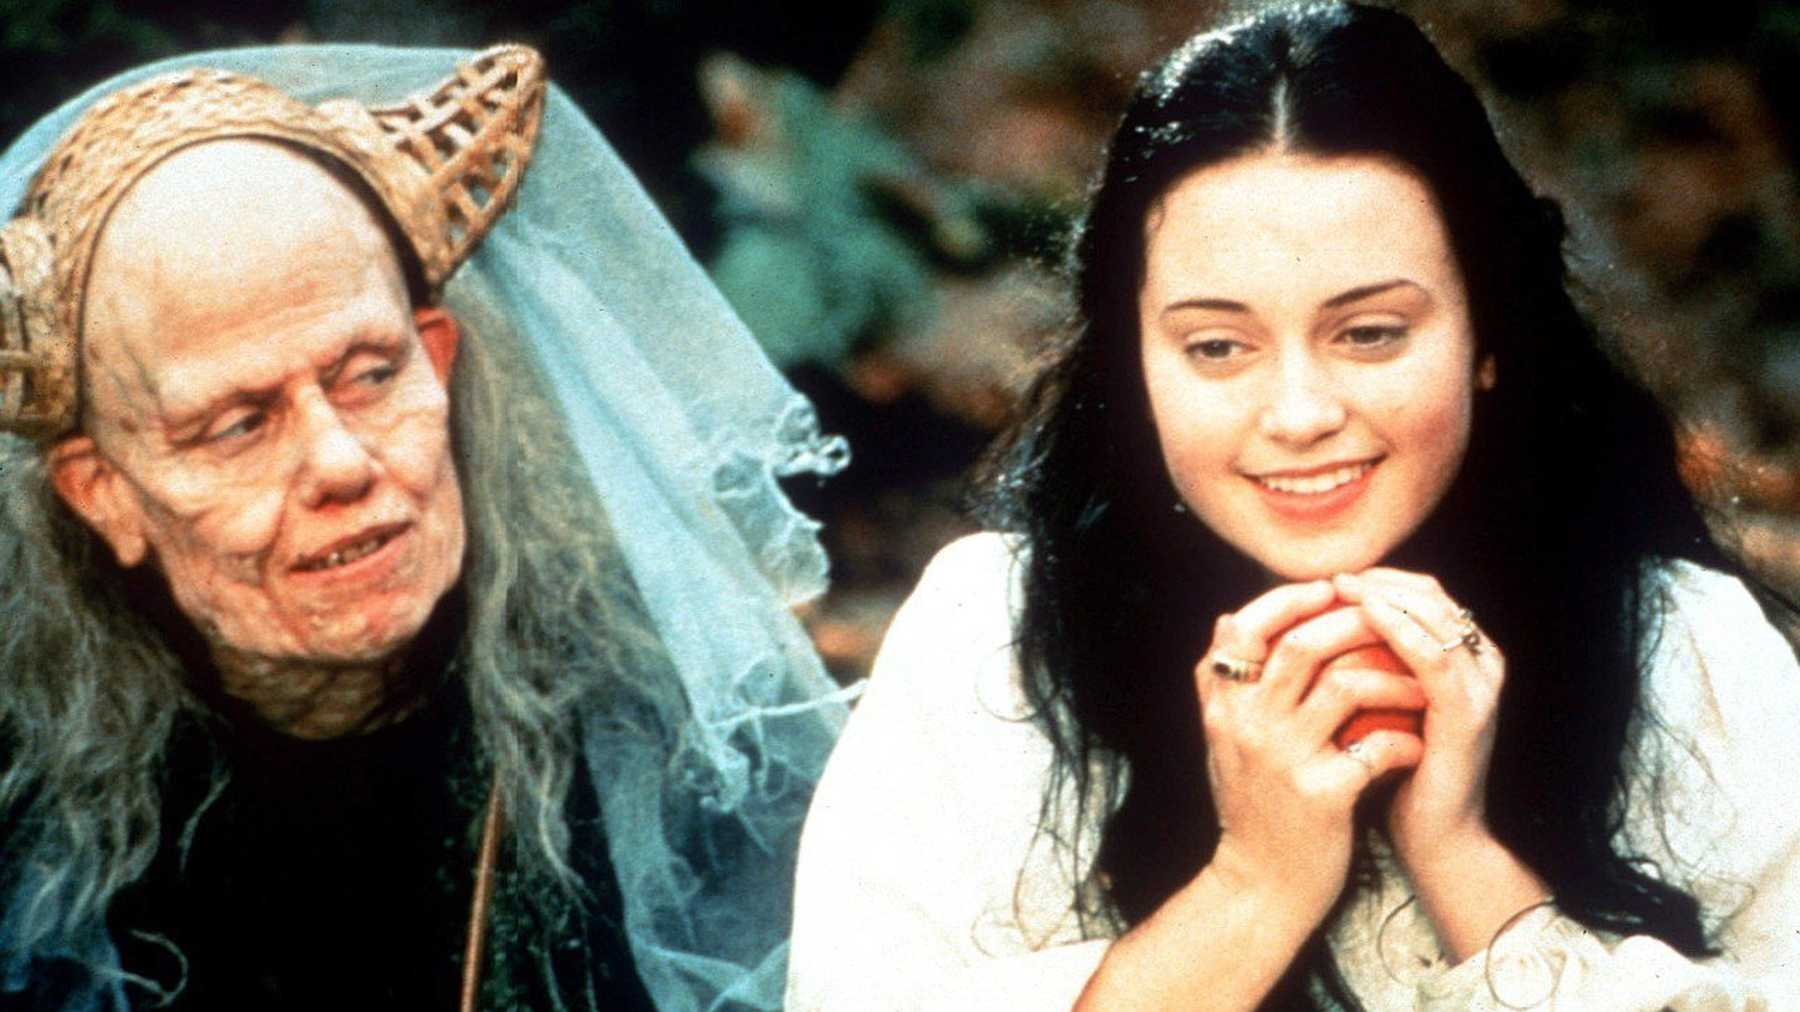 (l to r) Sigourney Wever disguised as the old crone gives Snow White (Monica Keena) the poisoned apple in Snow White: A Tale of Terror (1997)